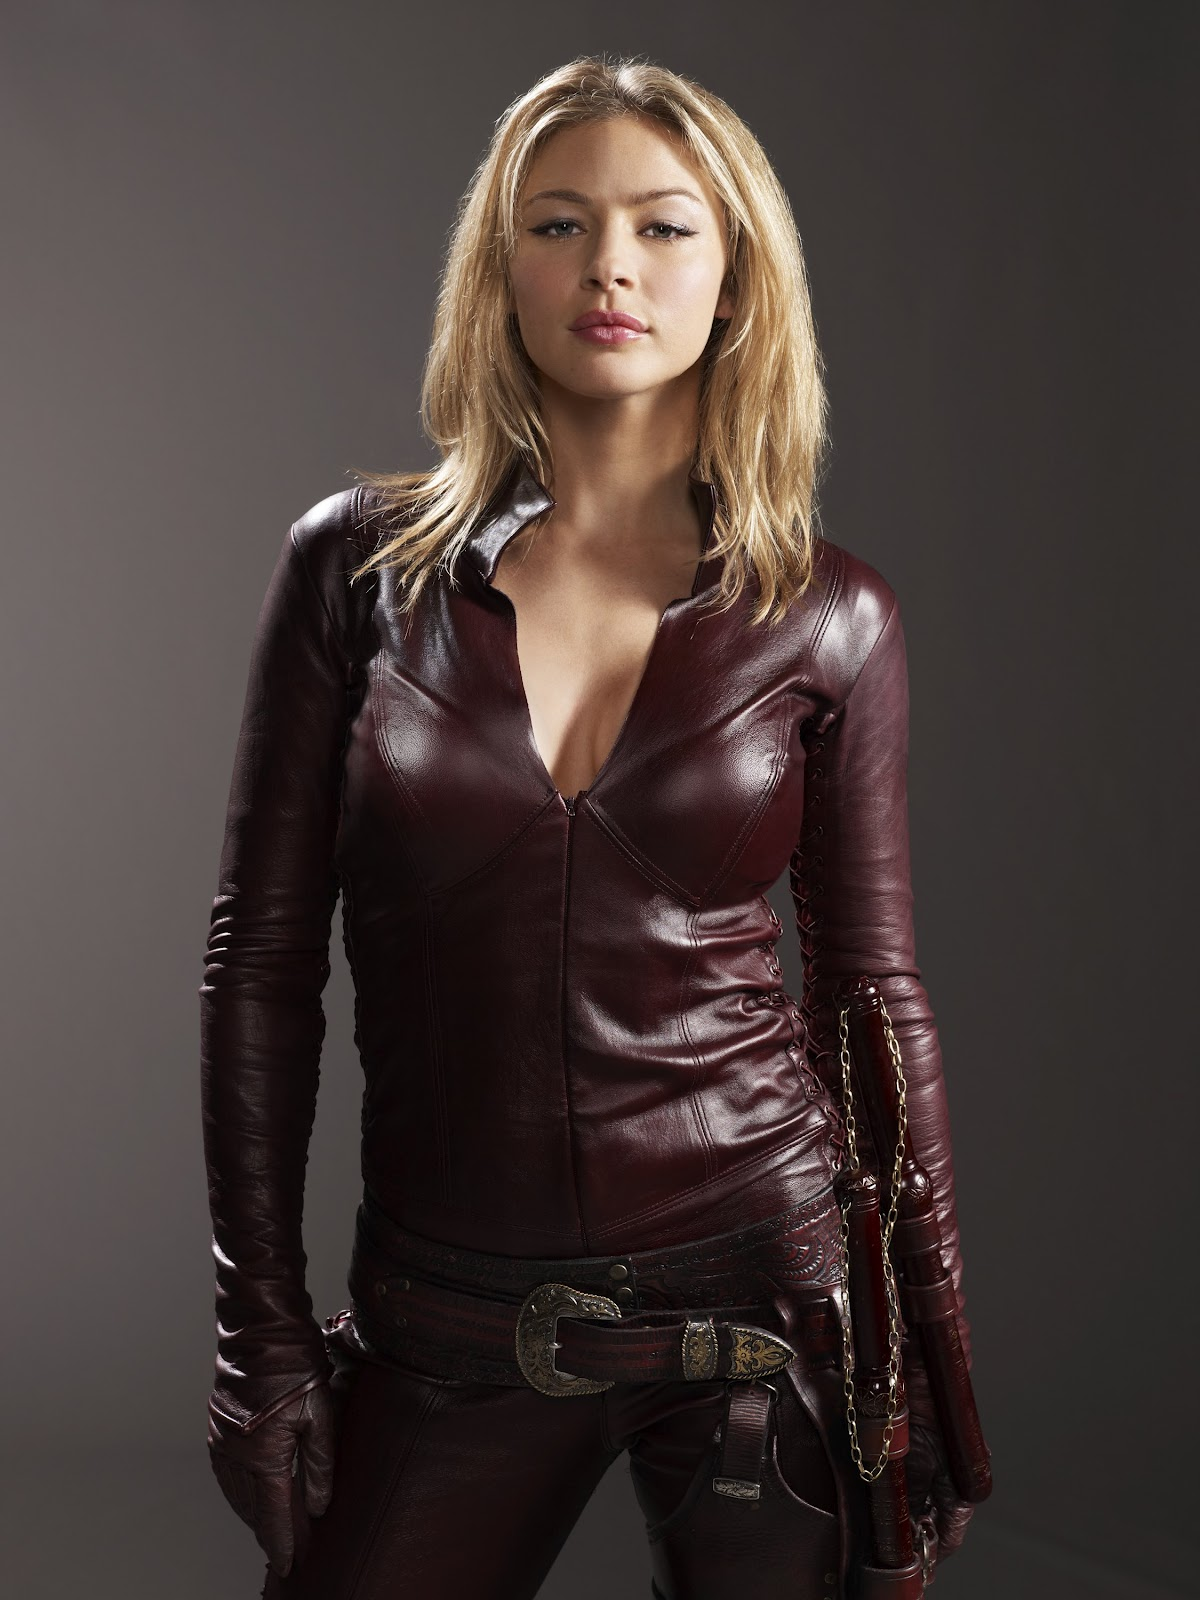 Tabrett bethell hot pussy opinion